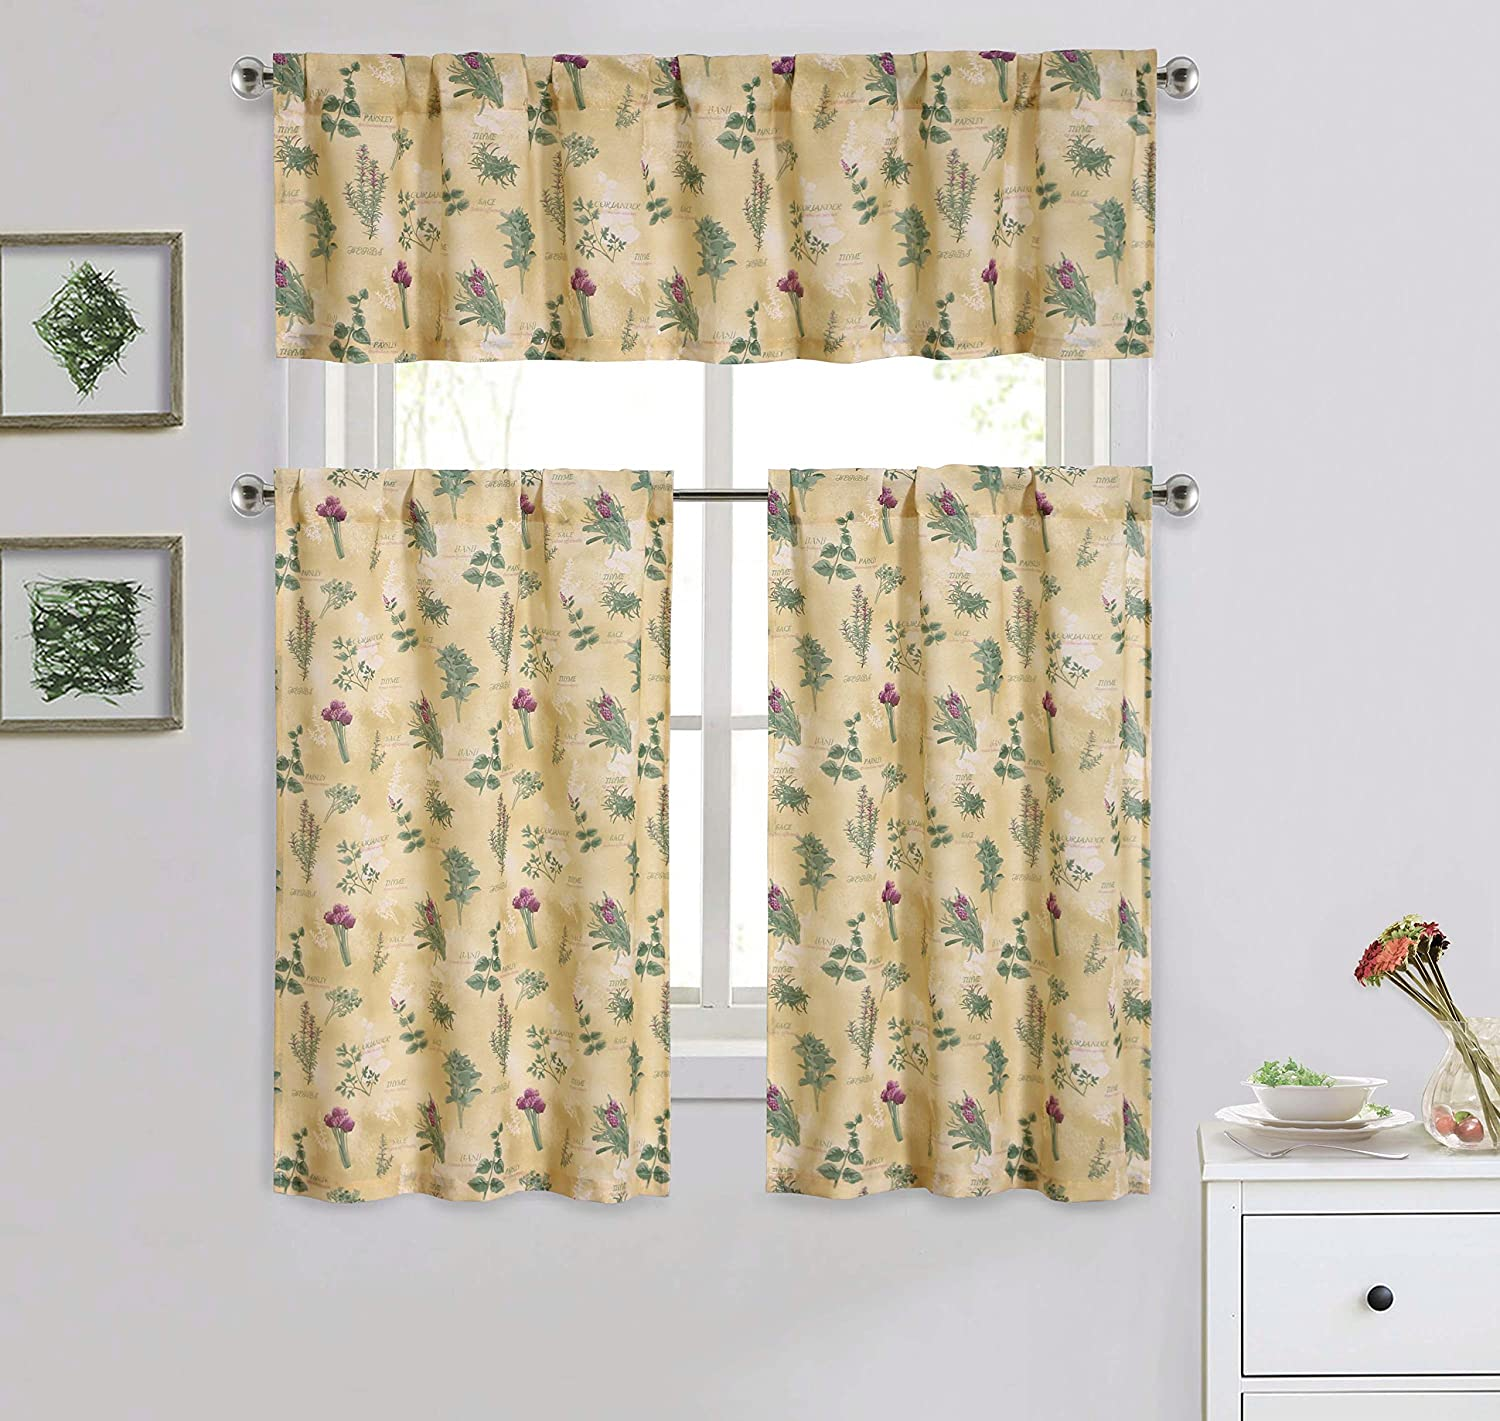 Cotton Blend 3 Piece Kitchen/Cafe Tier Window Curtain Set: Botanical Herb Design Bathroom and More KWC-ROSEMARY-MULTI